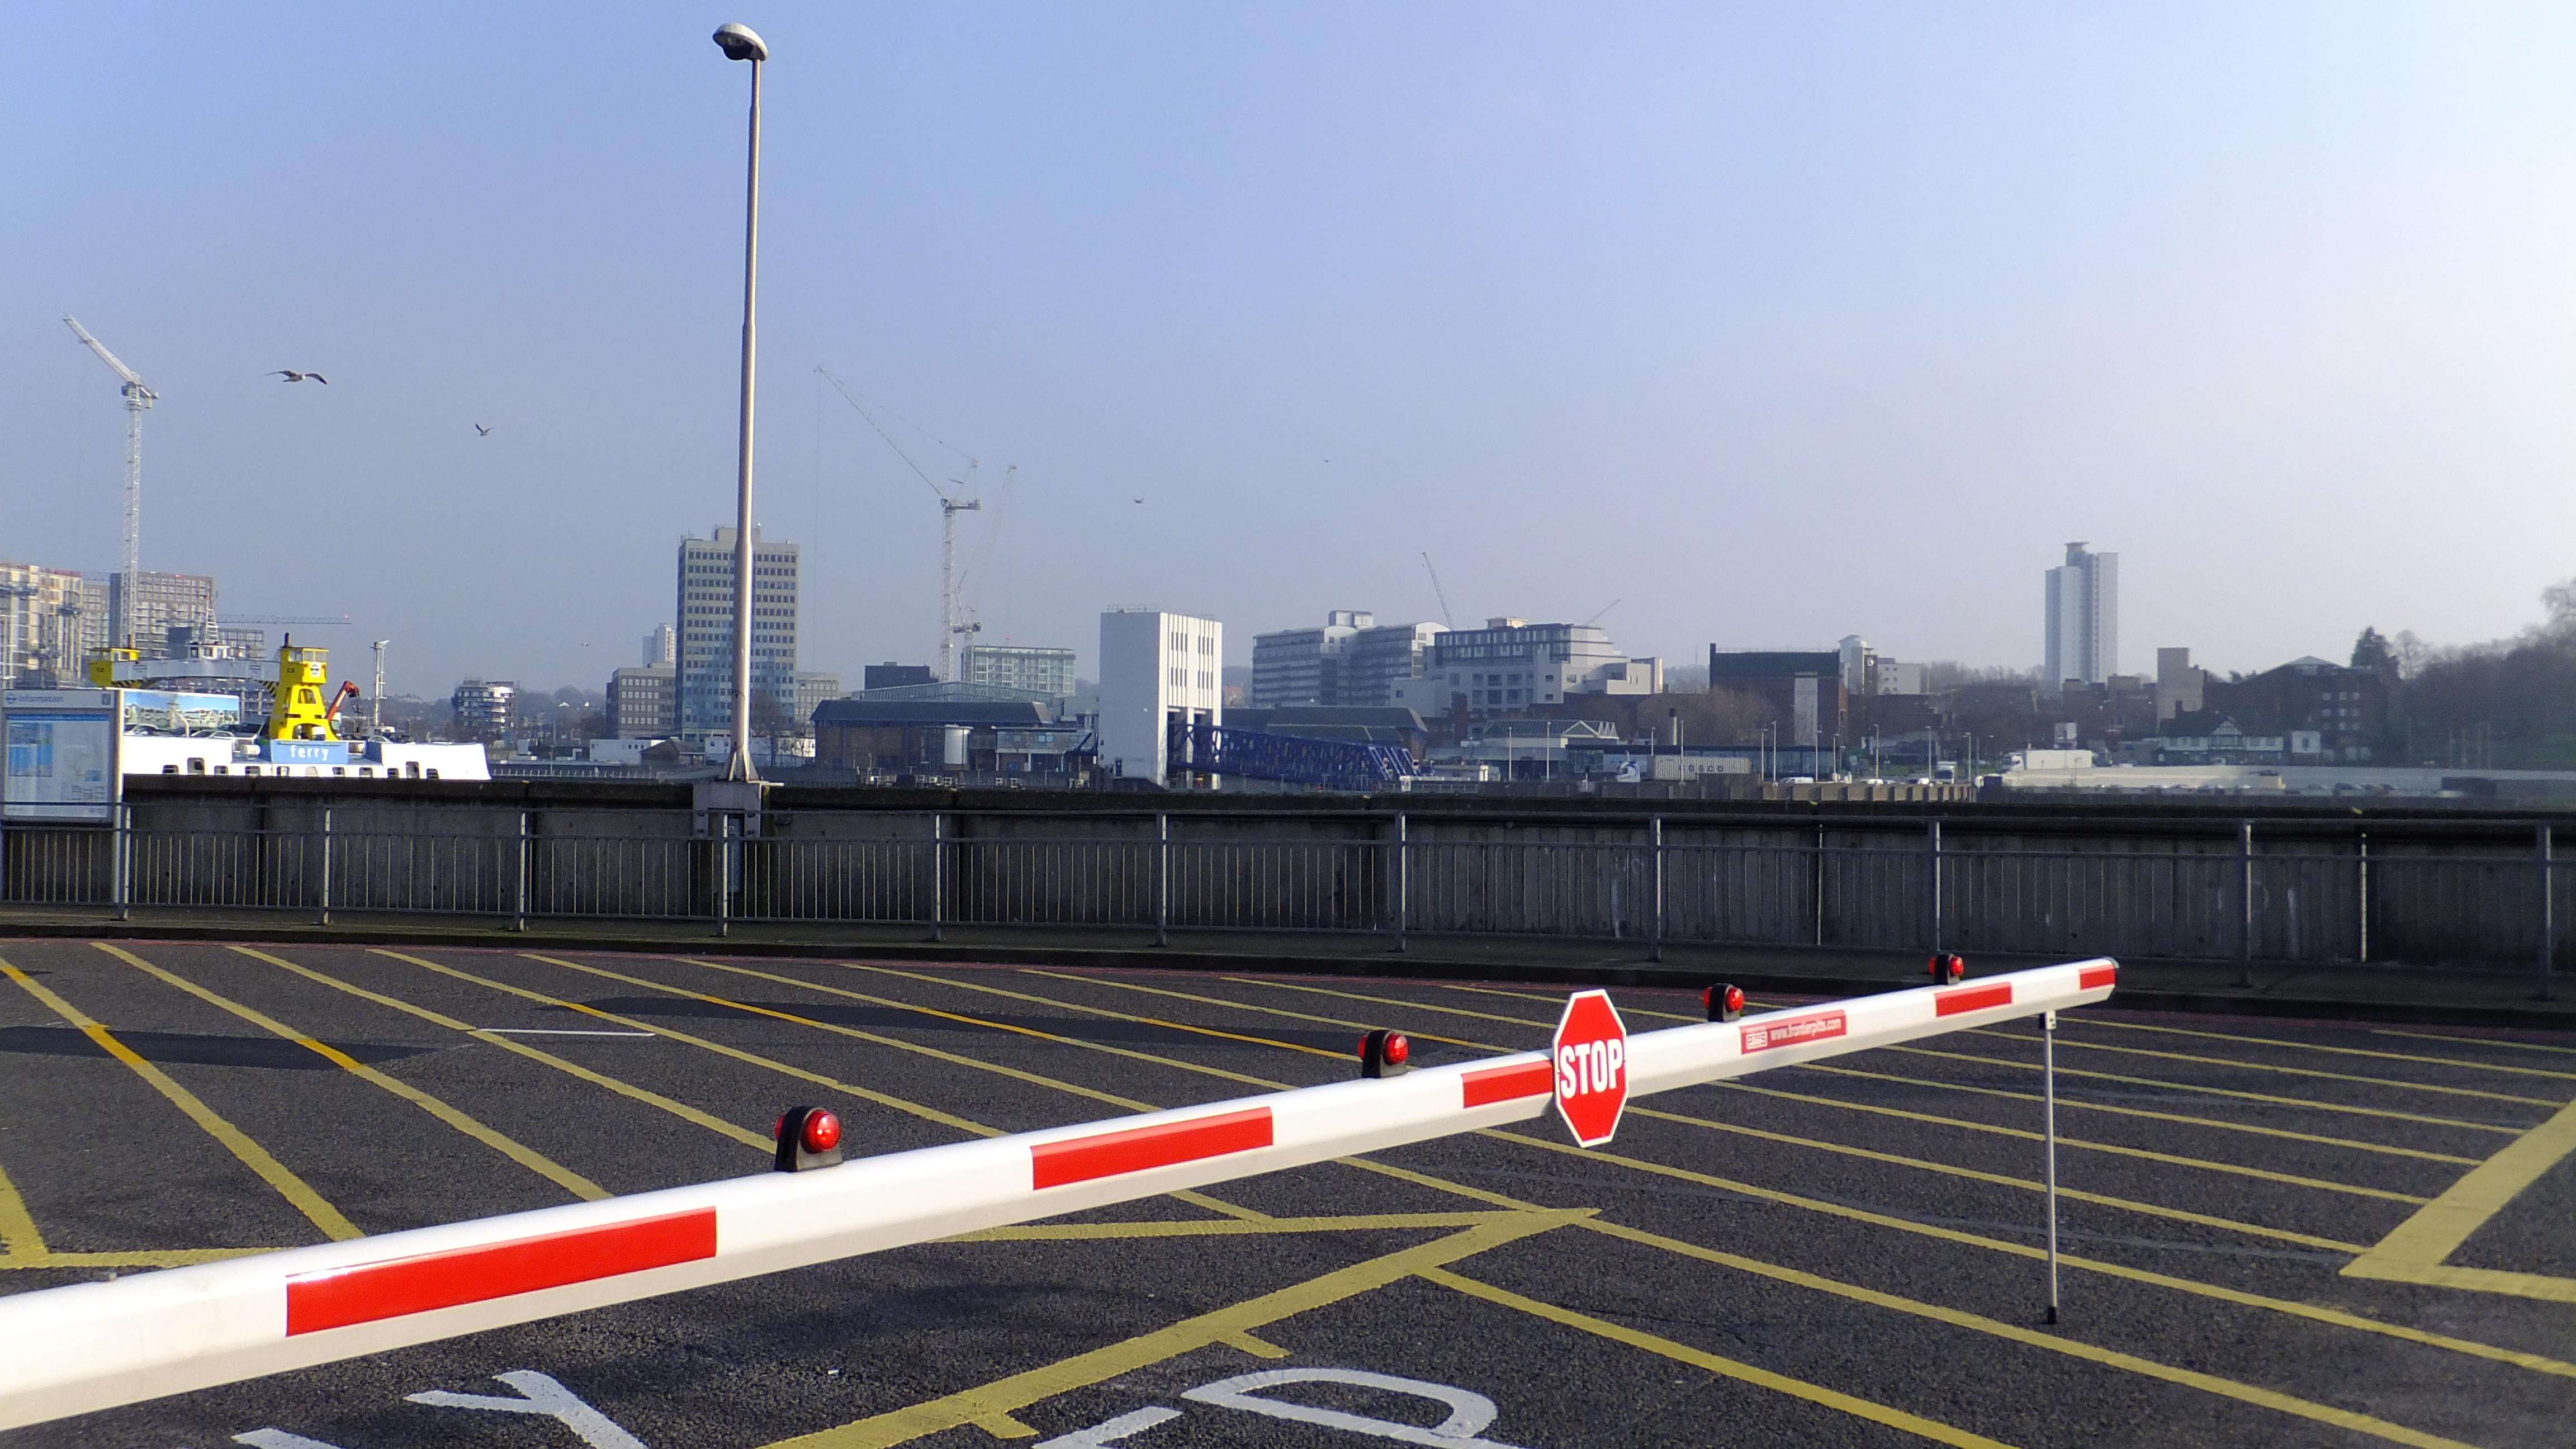 New Woolwich Ferry: Disastrous introduction and silence from TfL